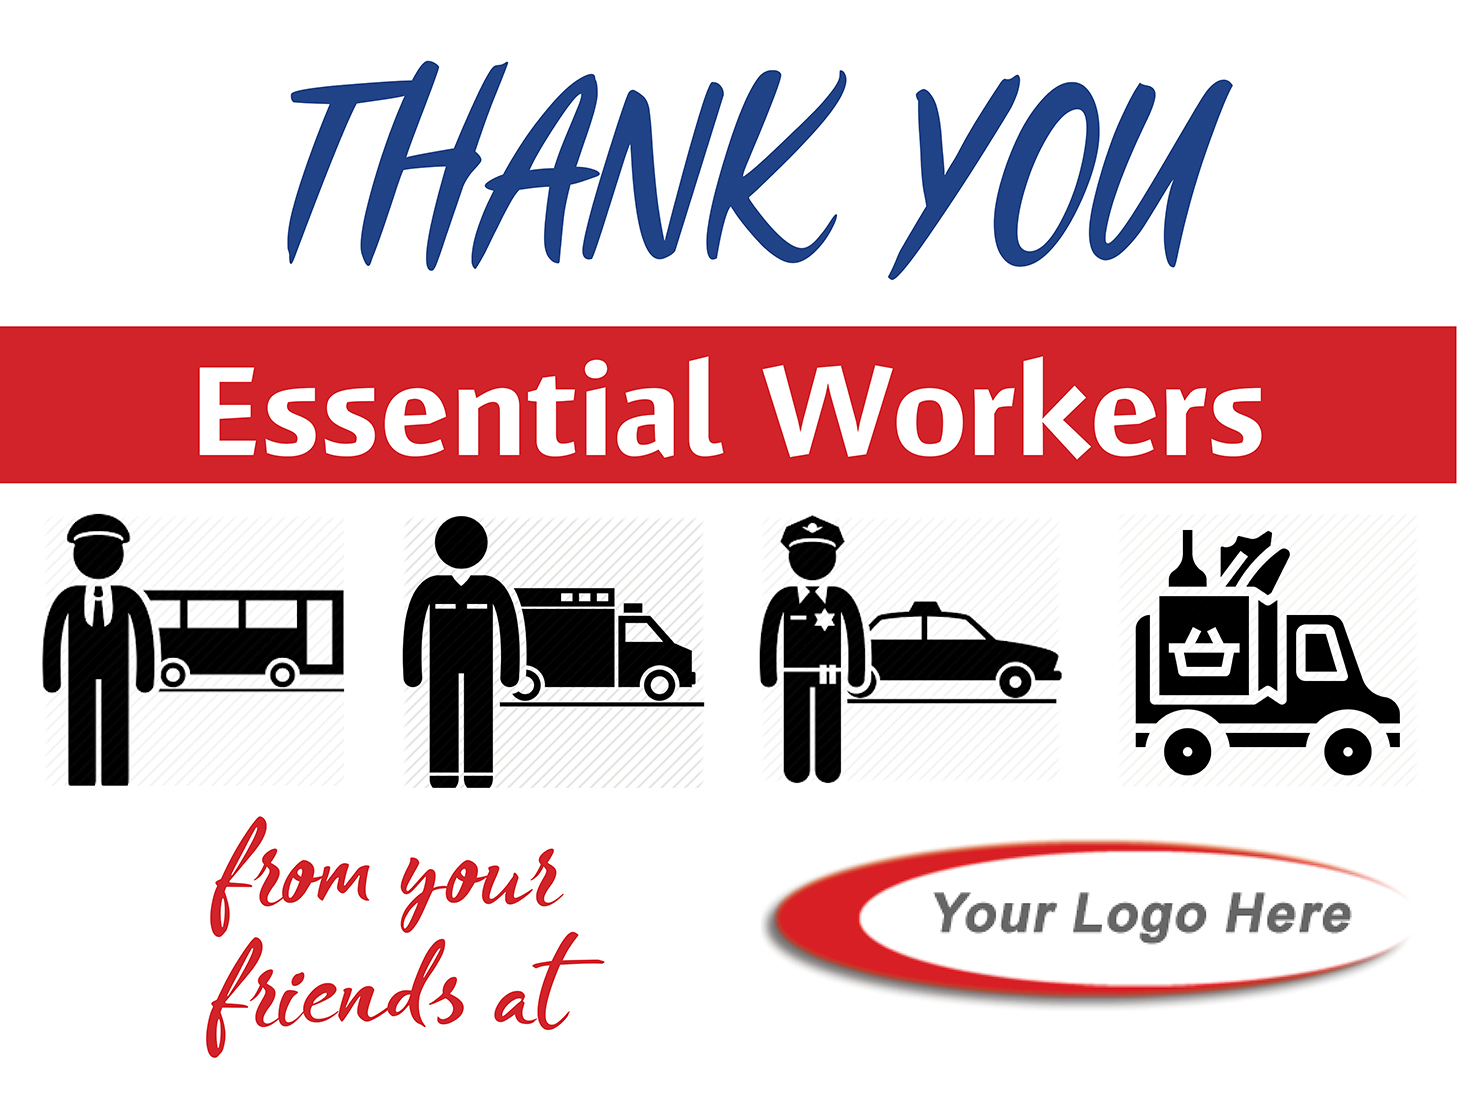 Essential Workers Thank You